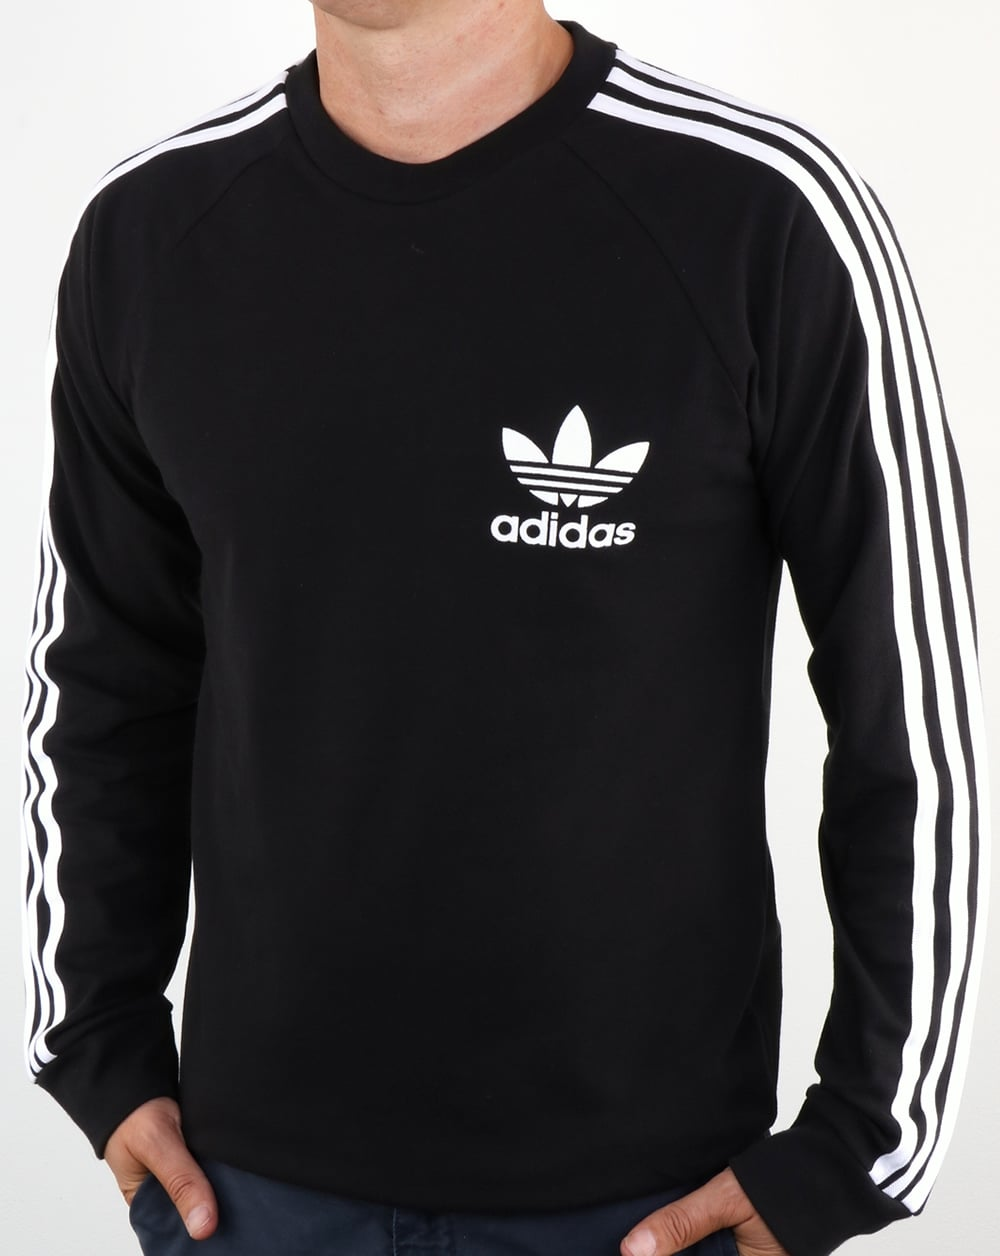 Adidas Originals Long Sleeve Pique T Shirt Black Tee Mens